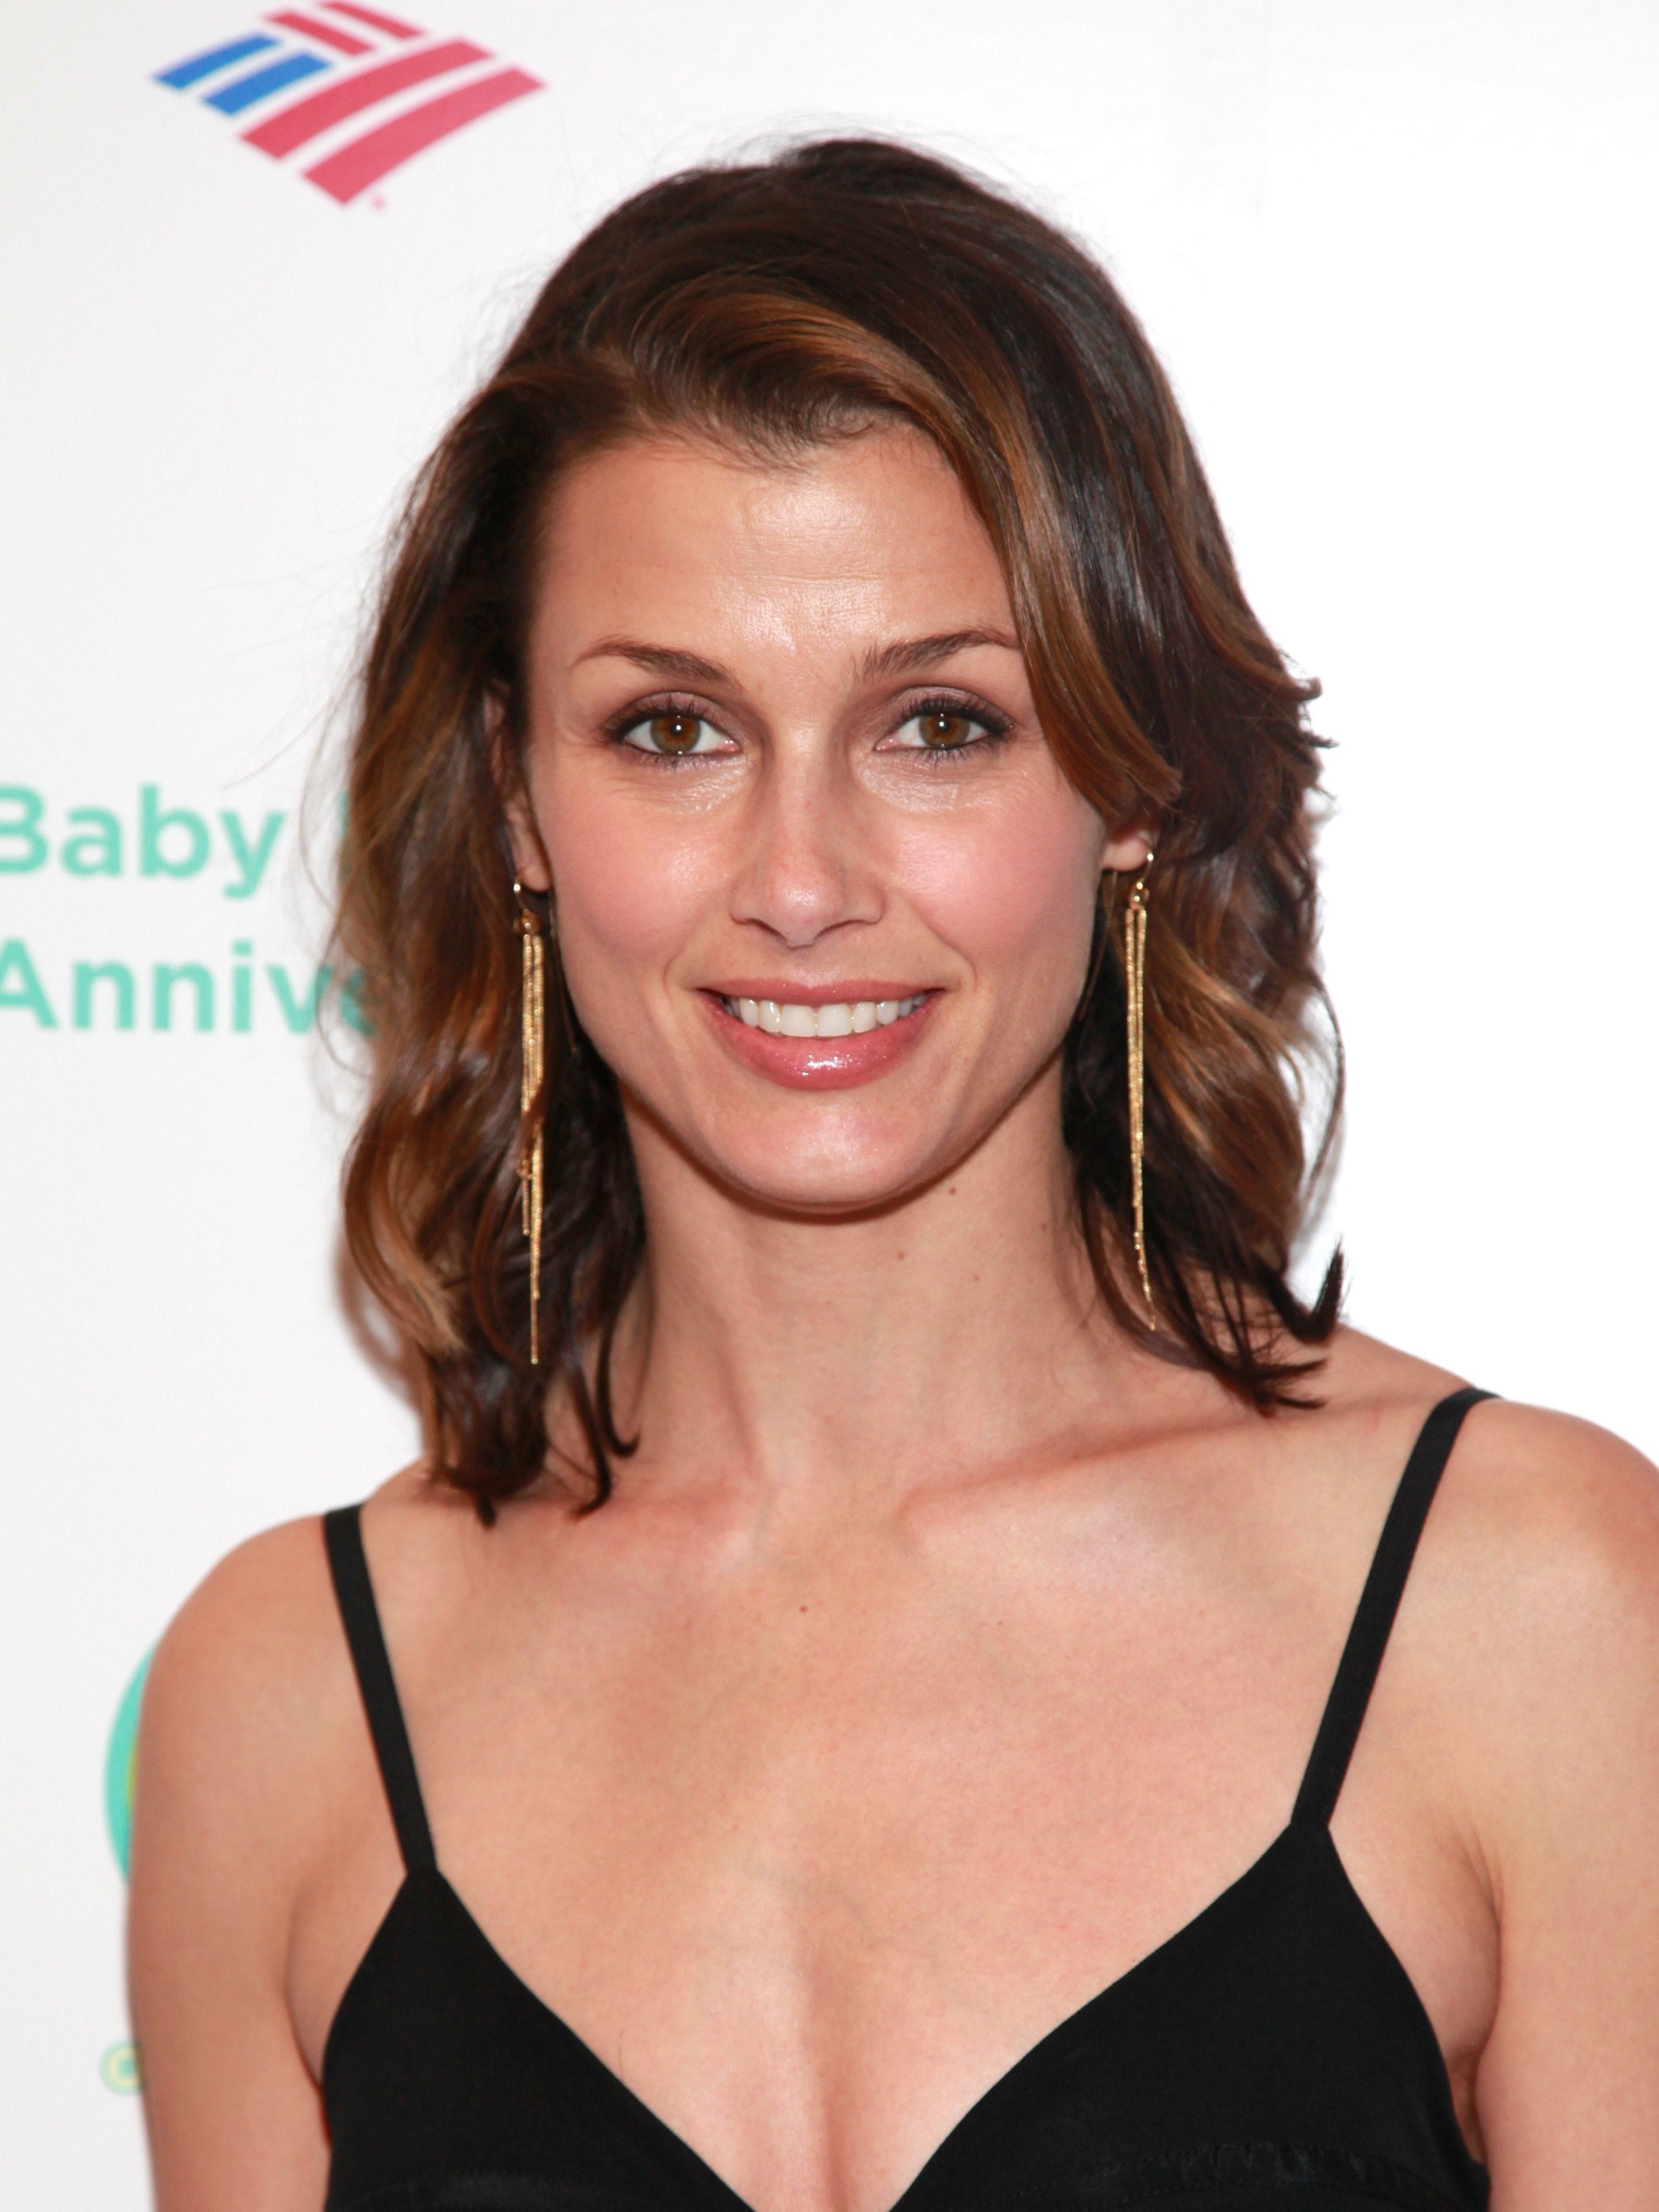 Bridget Moynahan Bridget Moynahan 10 Celebrities Who Can39t Wait to Get to